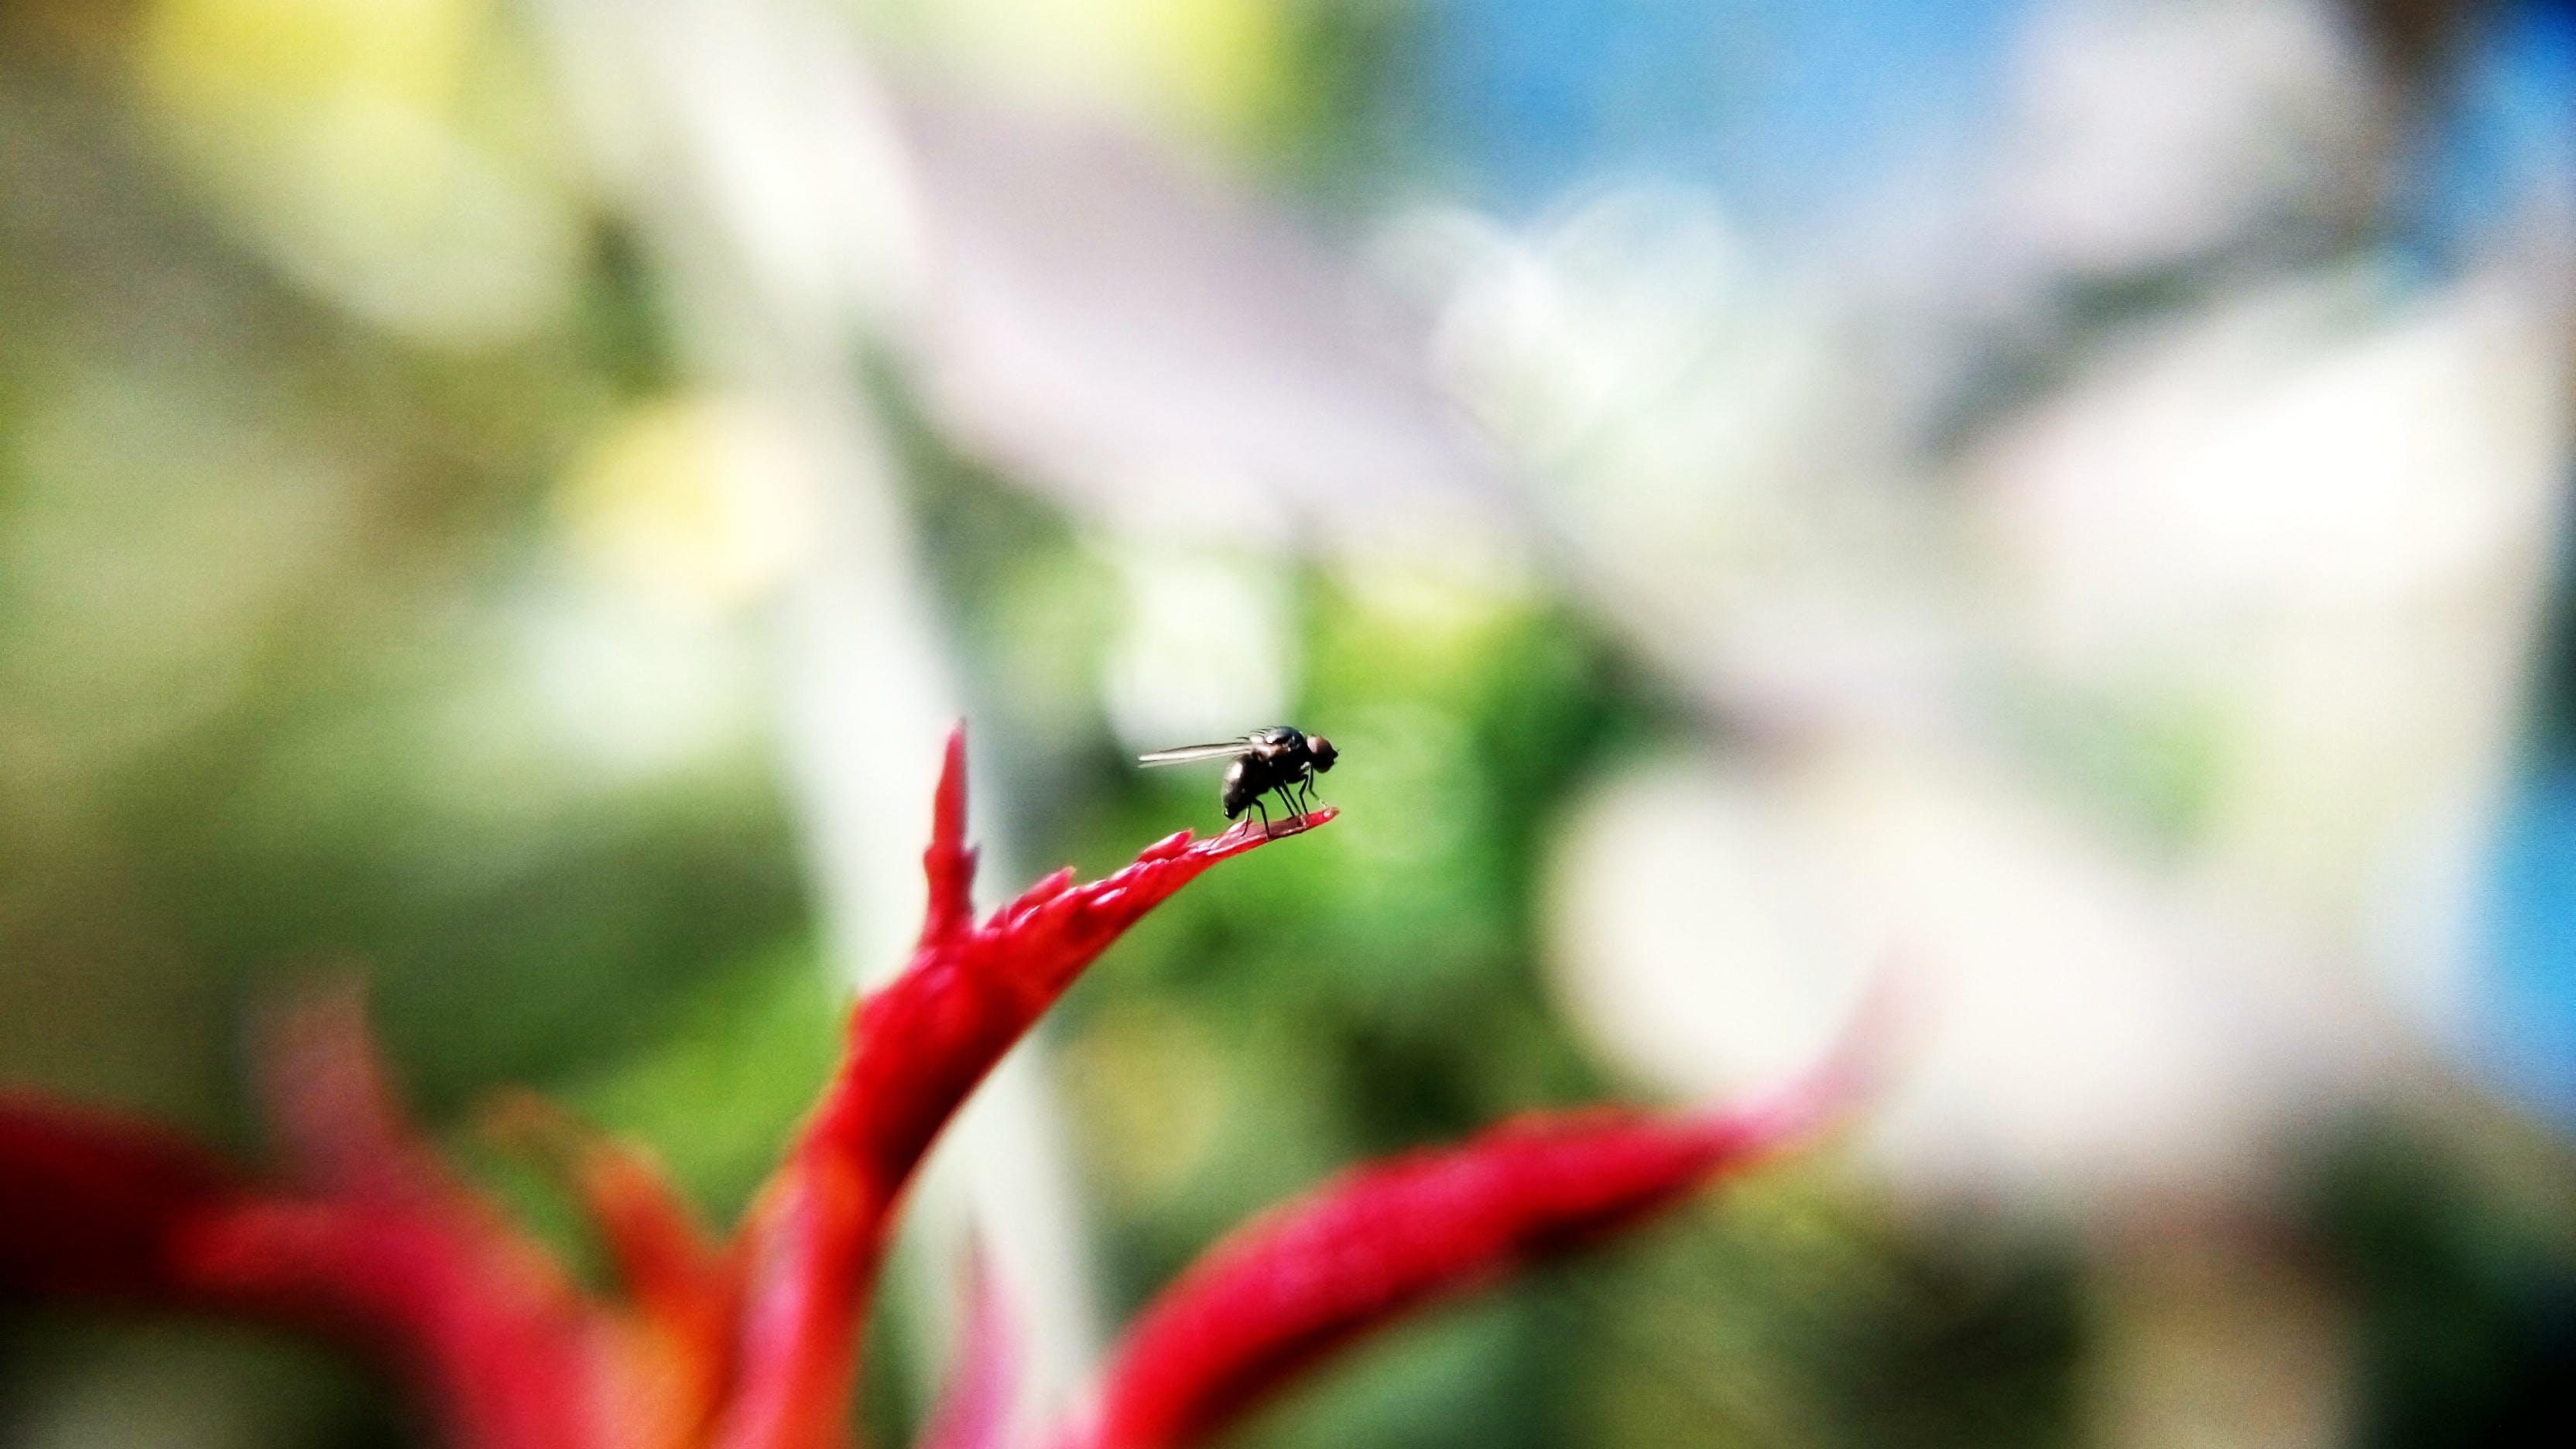 Black Insect on Red Plant